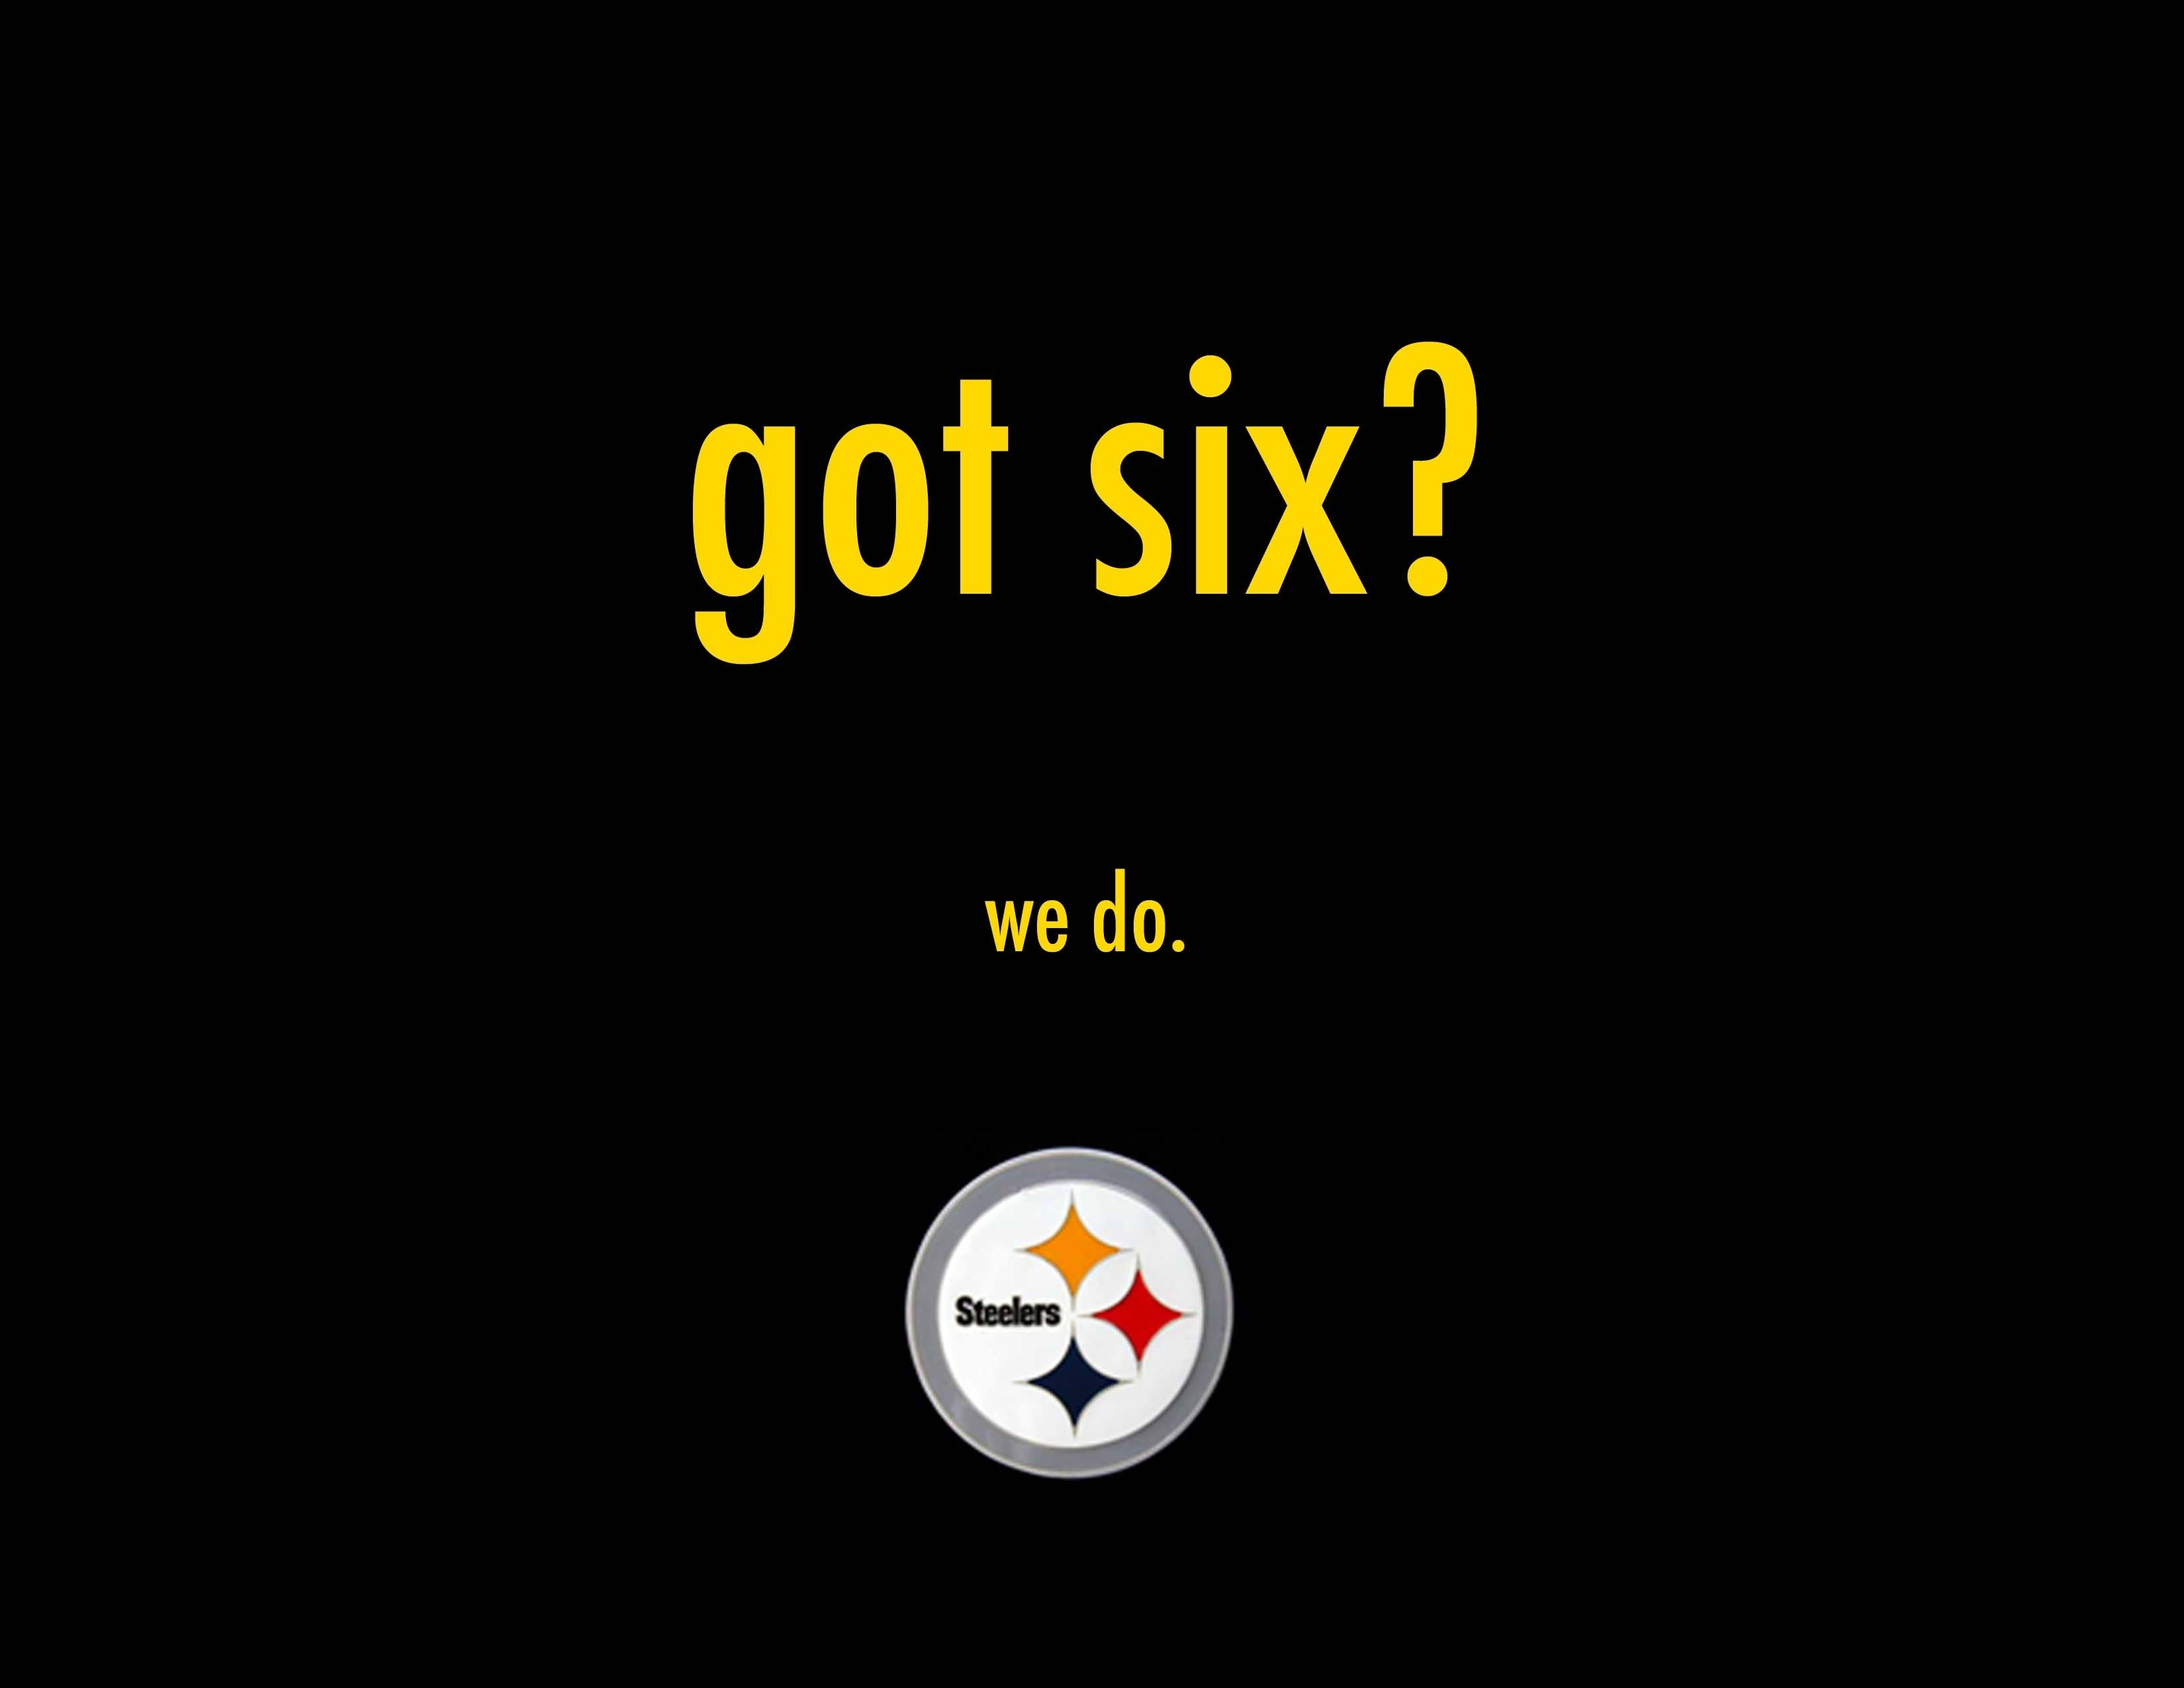 pittsburgh steelers 7 wallpaper, download free pittsburgh steelers